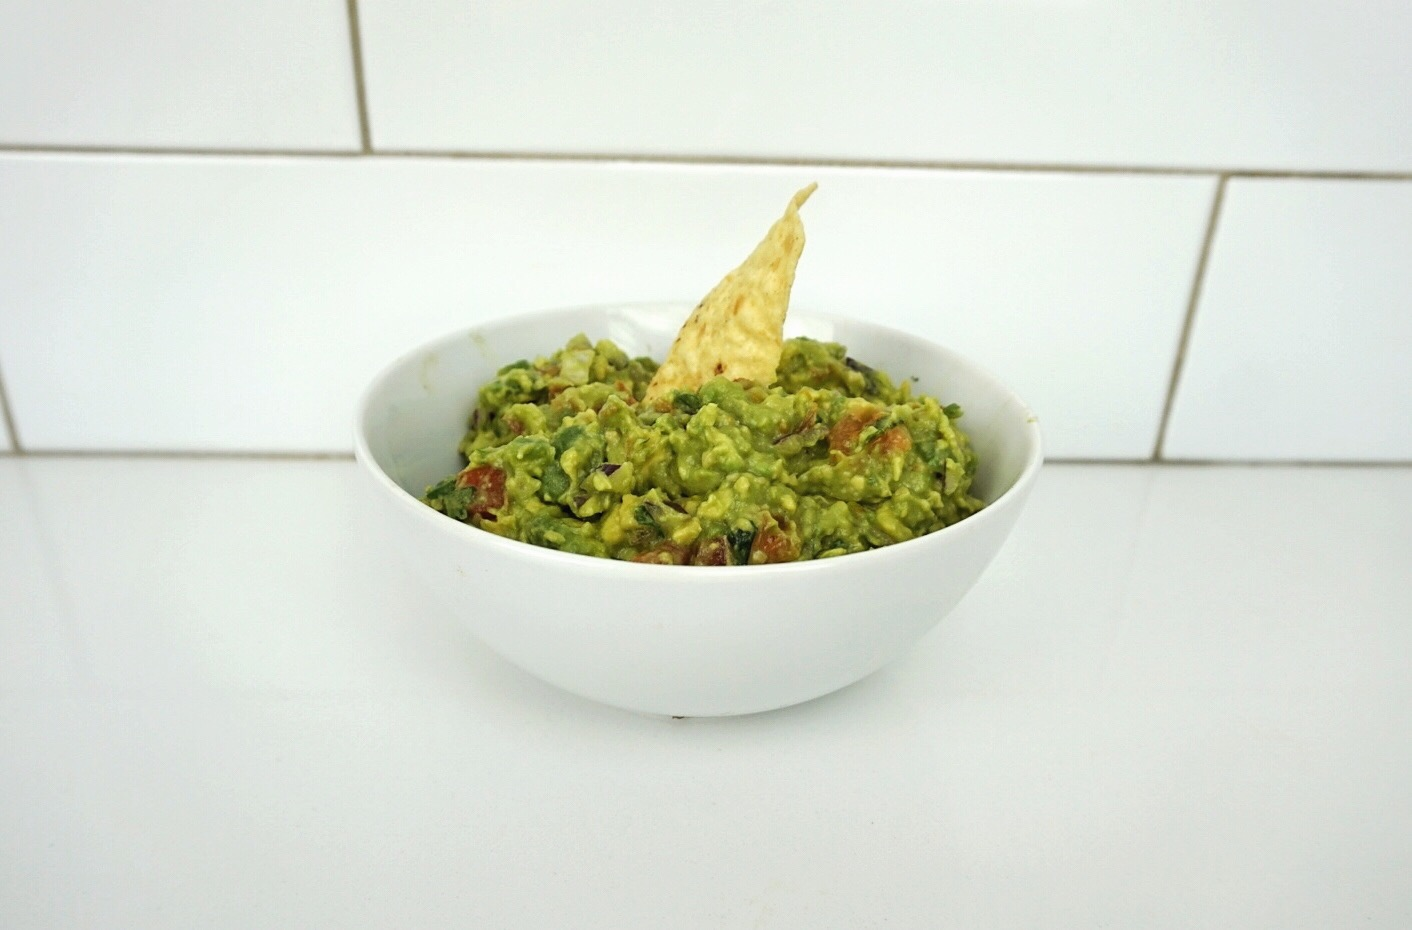 COOKING WITH CAIT: HOMEMADE GUACAMOLE AND HEALTHY CHIP OPTIONS